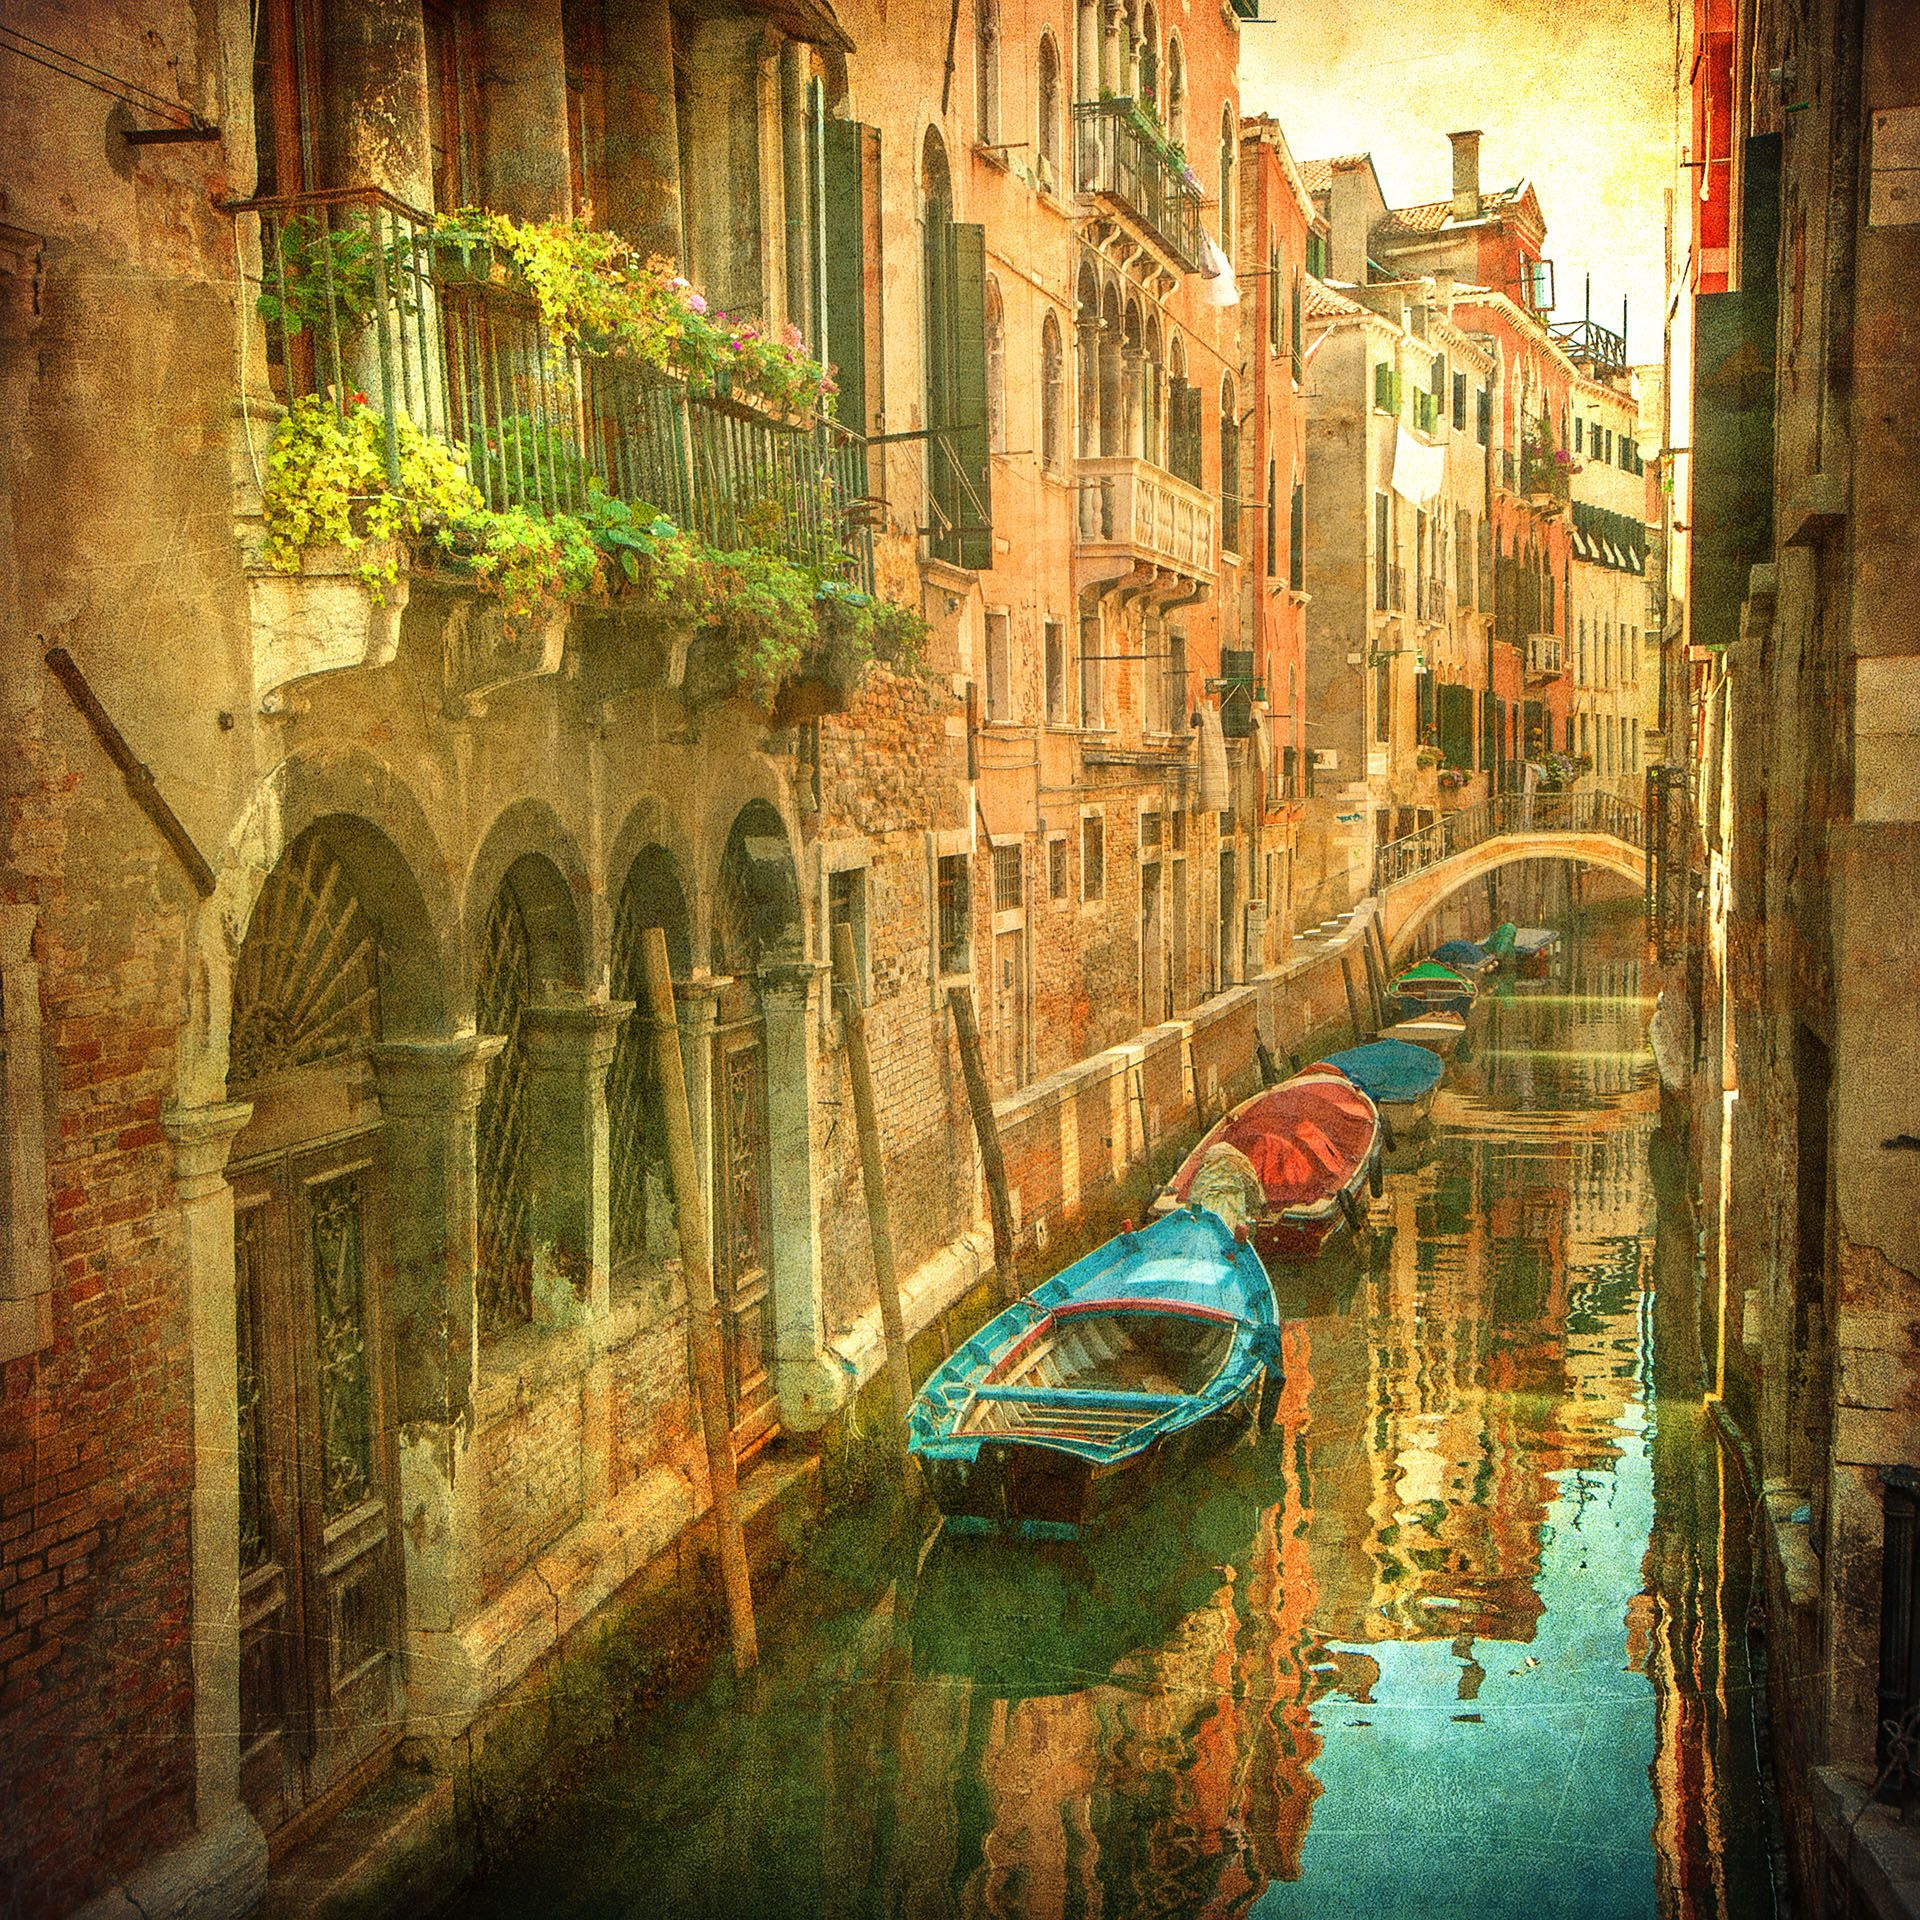 Details about Vintage Venice Canal Italy Photo Wallpaper Wall 1920x1920